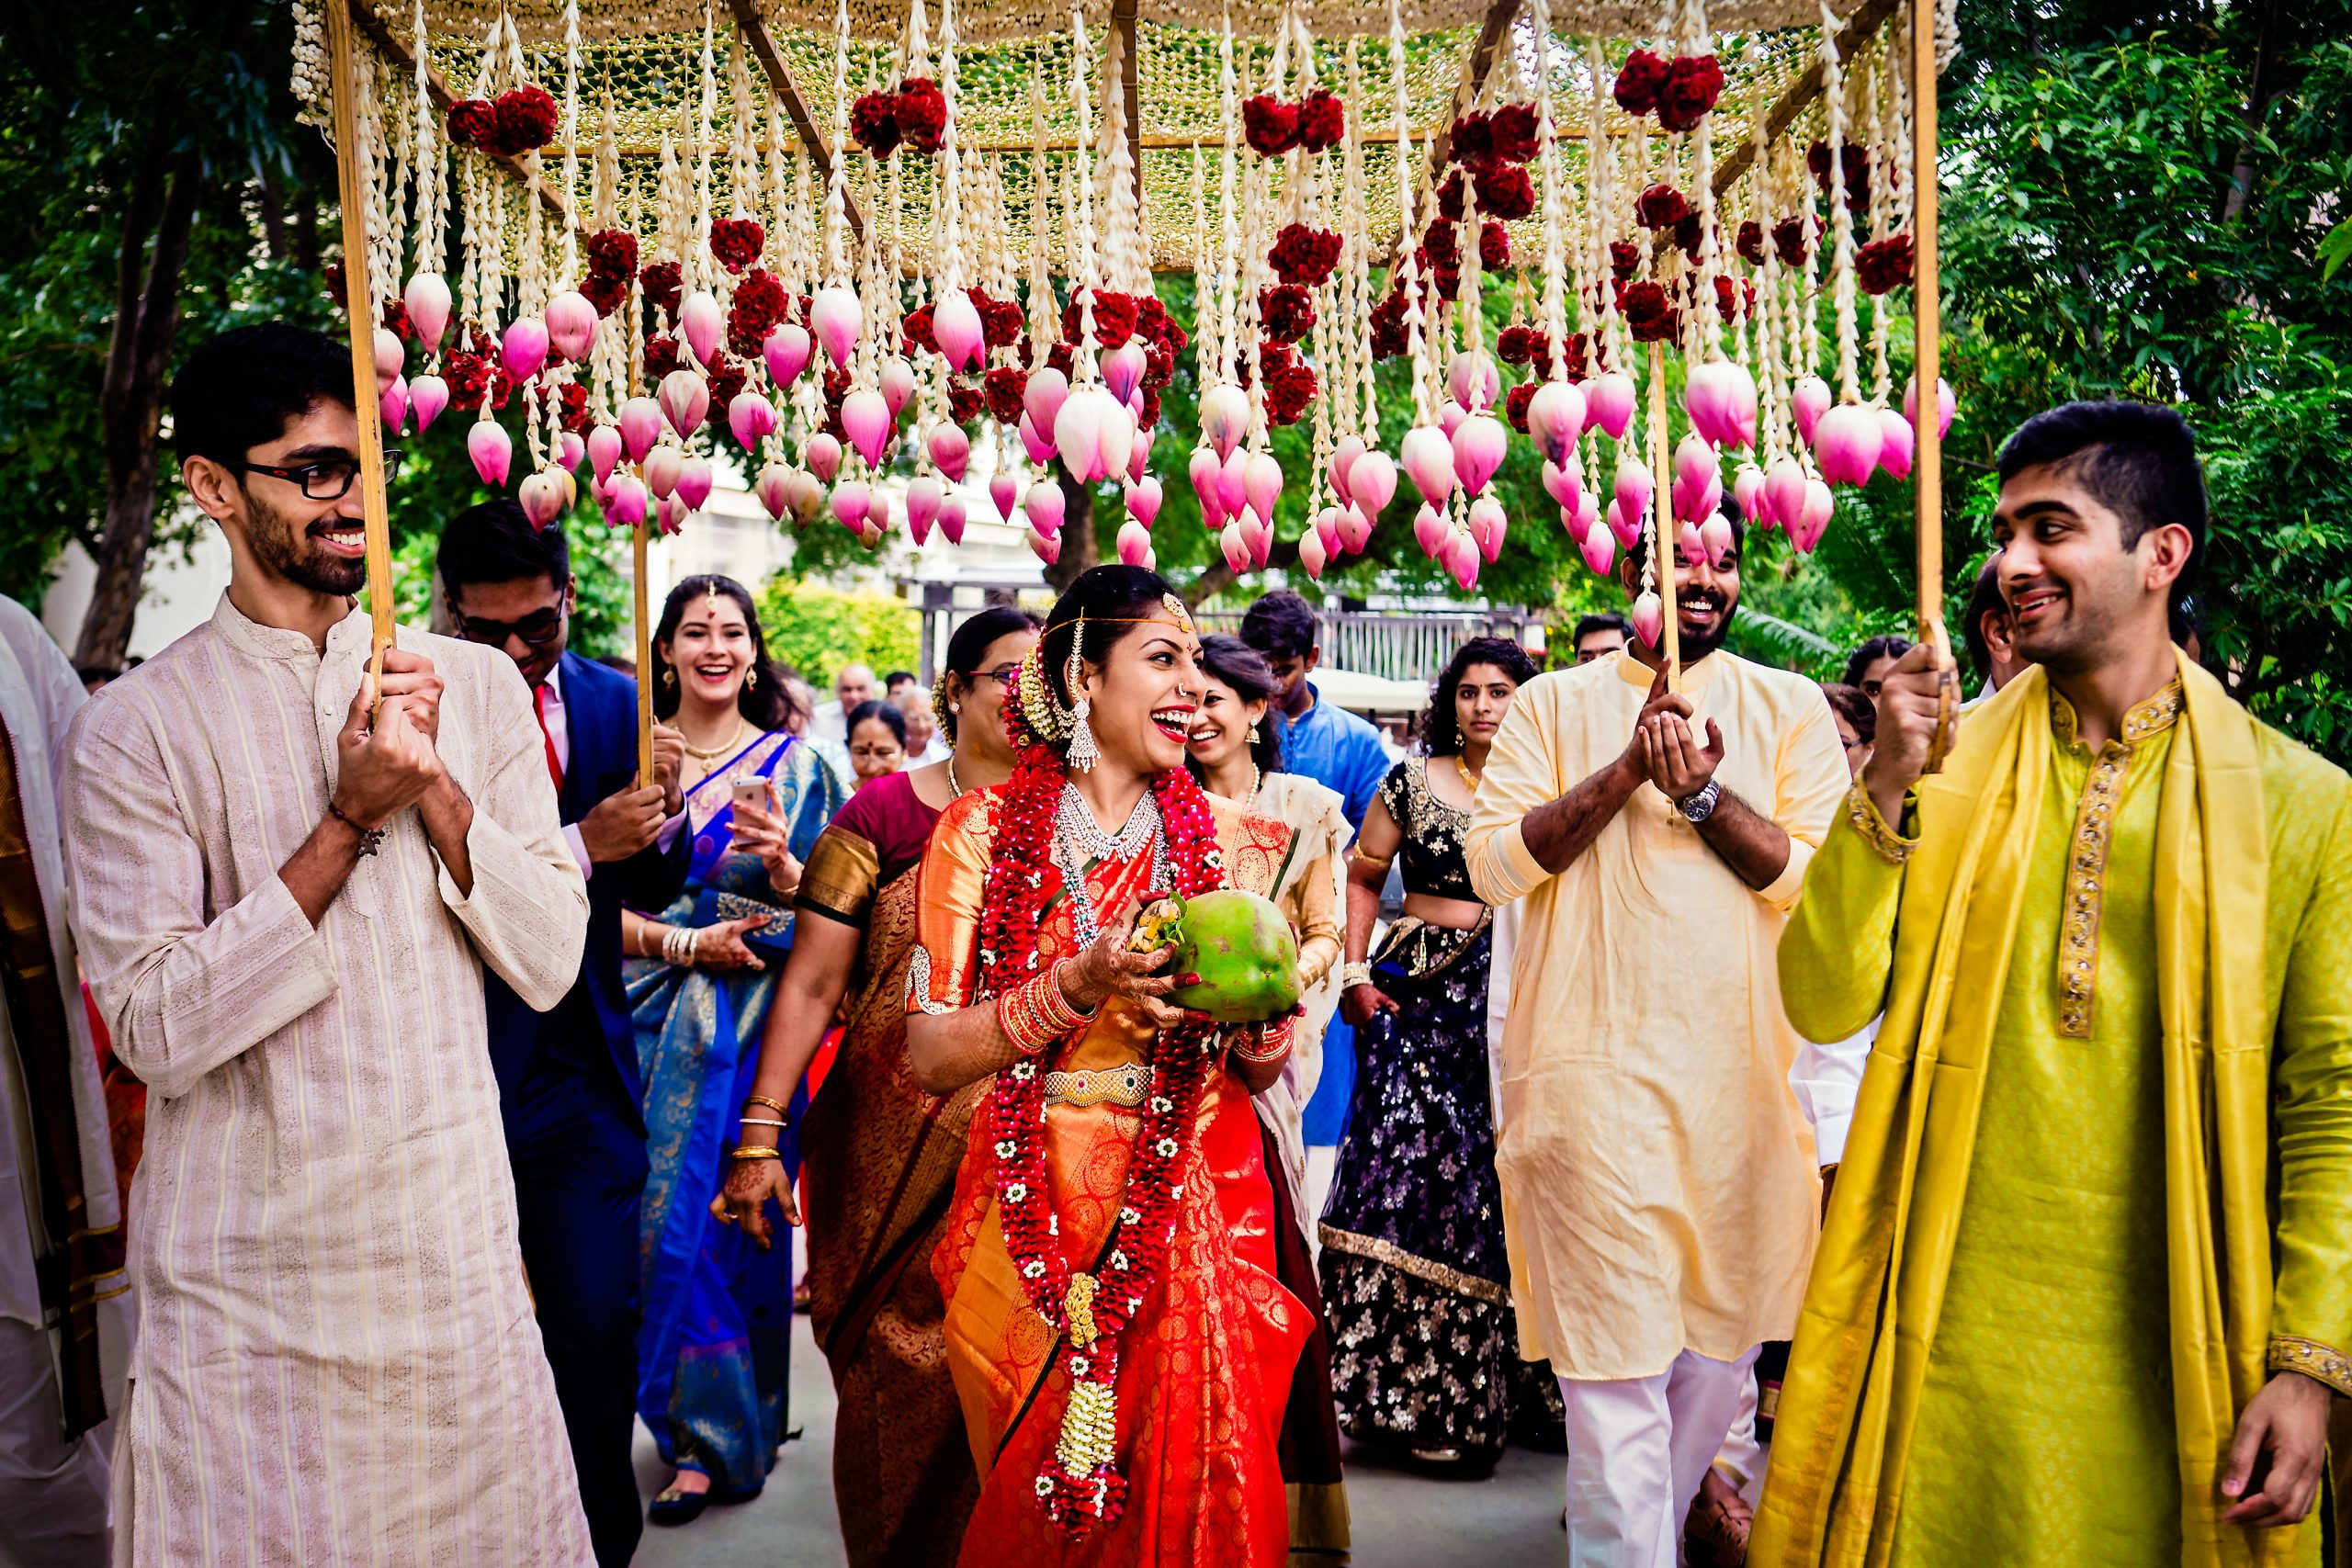 Indian bride walks to the ceremony with bridal party under a floral mandap